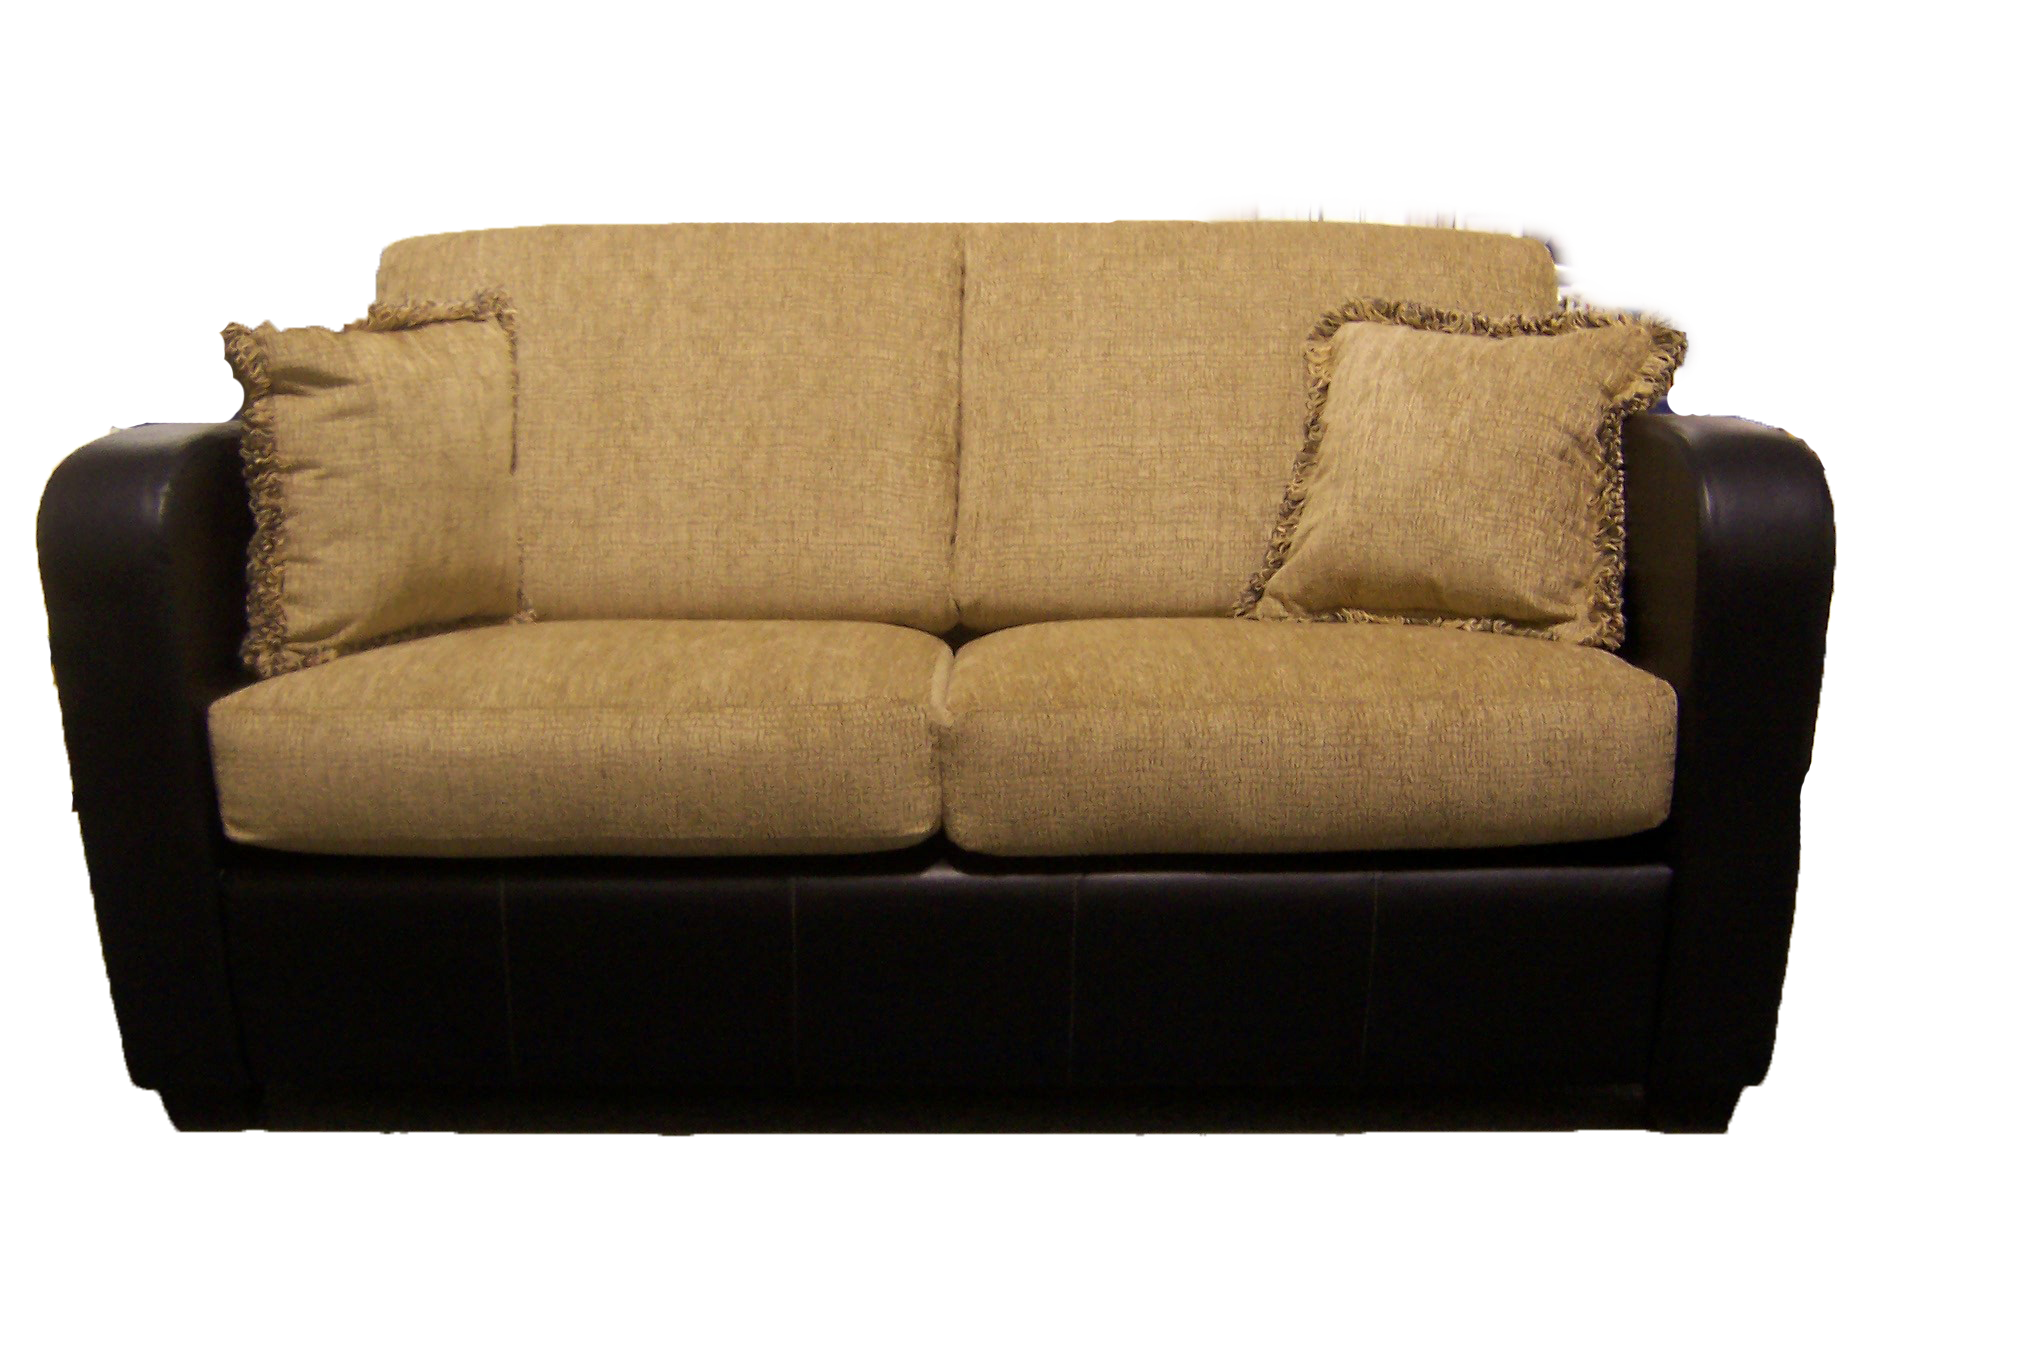 Png image . Furniture clipart fancy sofa